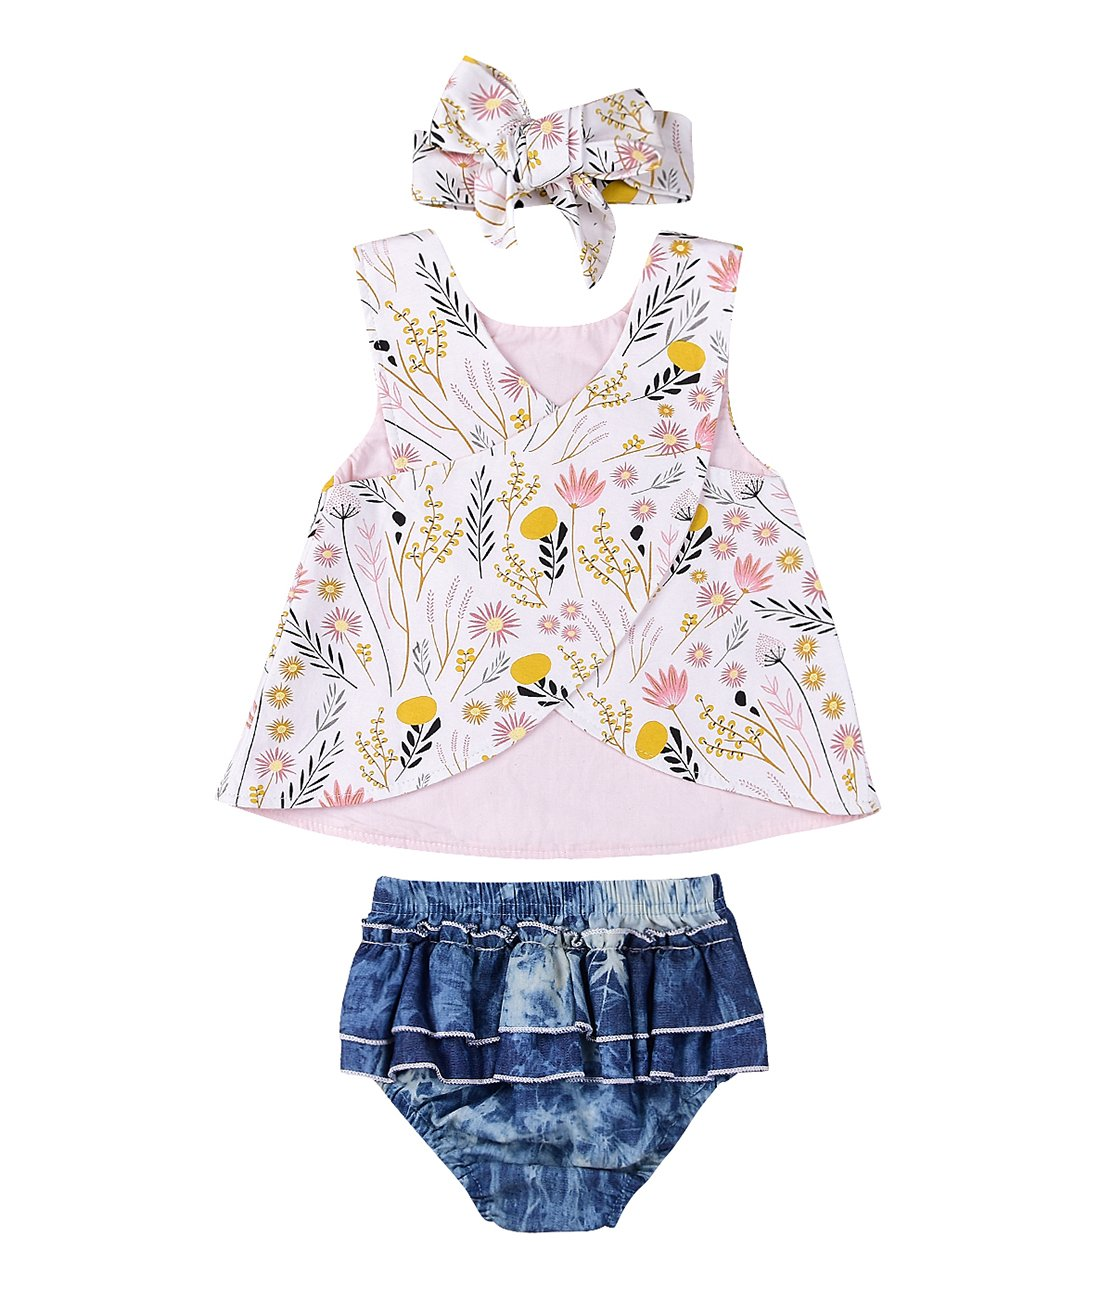 Infant Baby Girl Outfit Wildflowers Cross Vest Ruffled Leaf Short Pants With Headband Clothing (Tag: 80/6-12 Months, White)